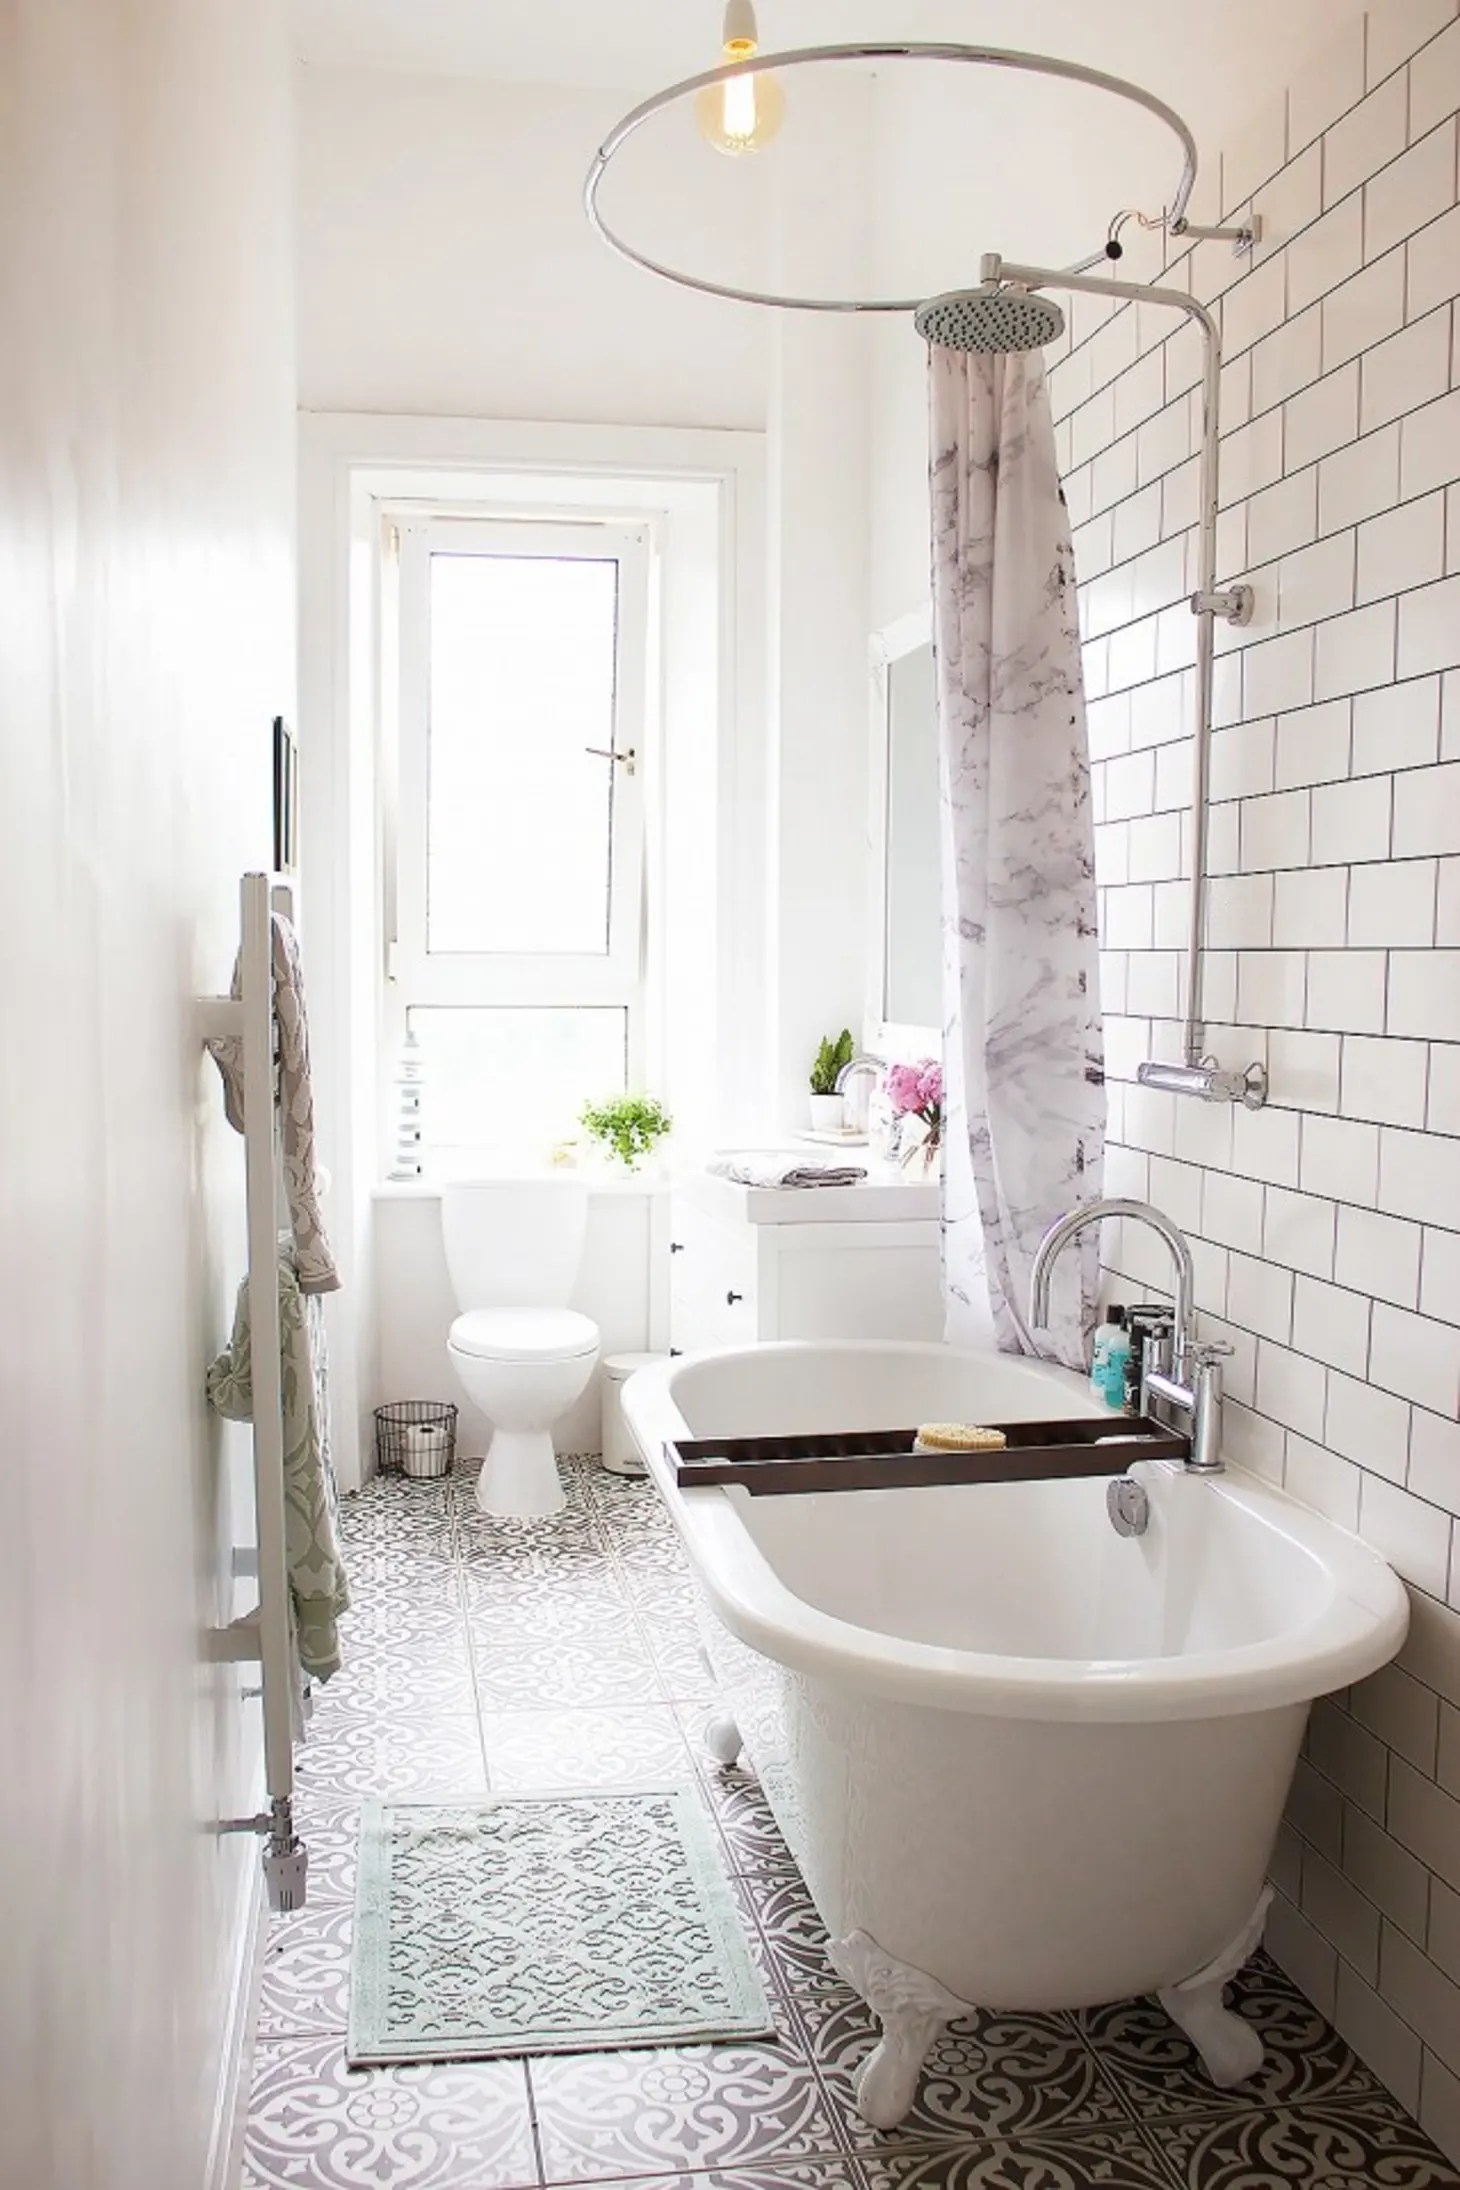 Stylish Remodeling Ideas for Small Bathrooms | Apartment ... on Small Apartment Bathroom Storage Ideas  id=91895